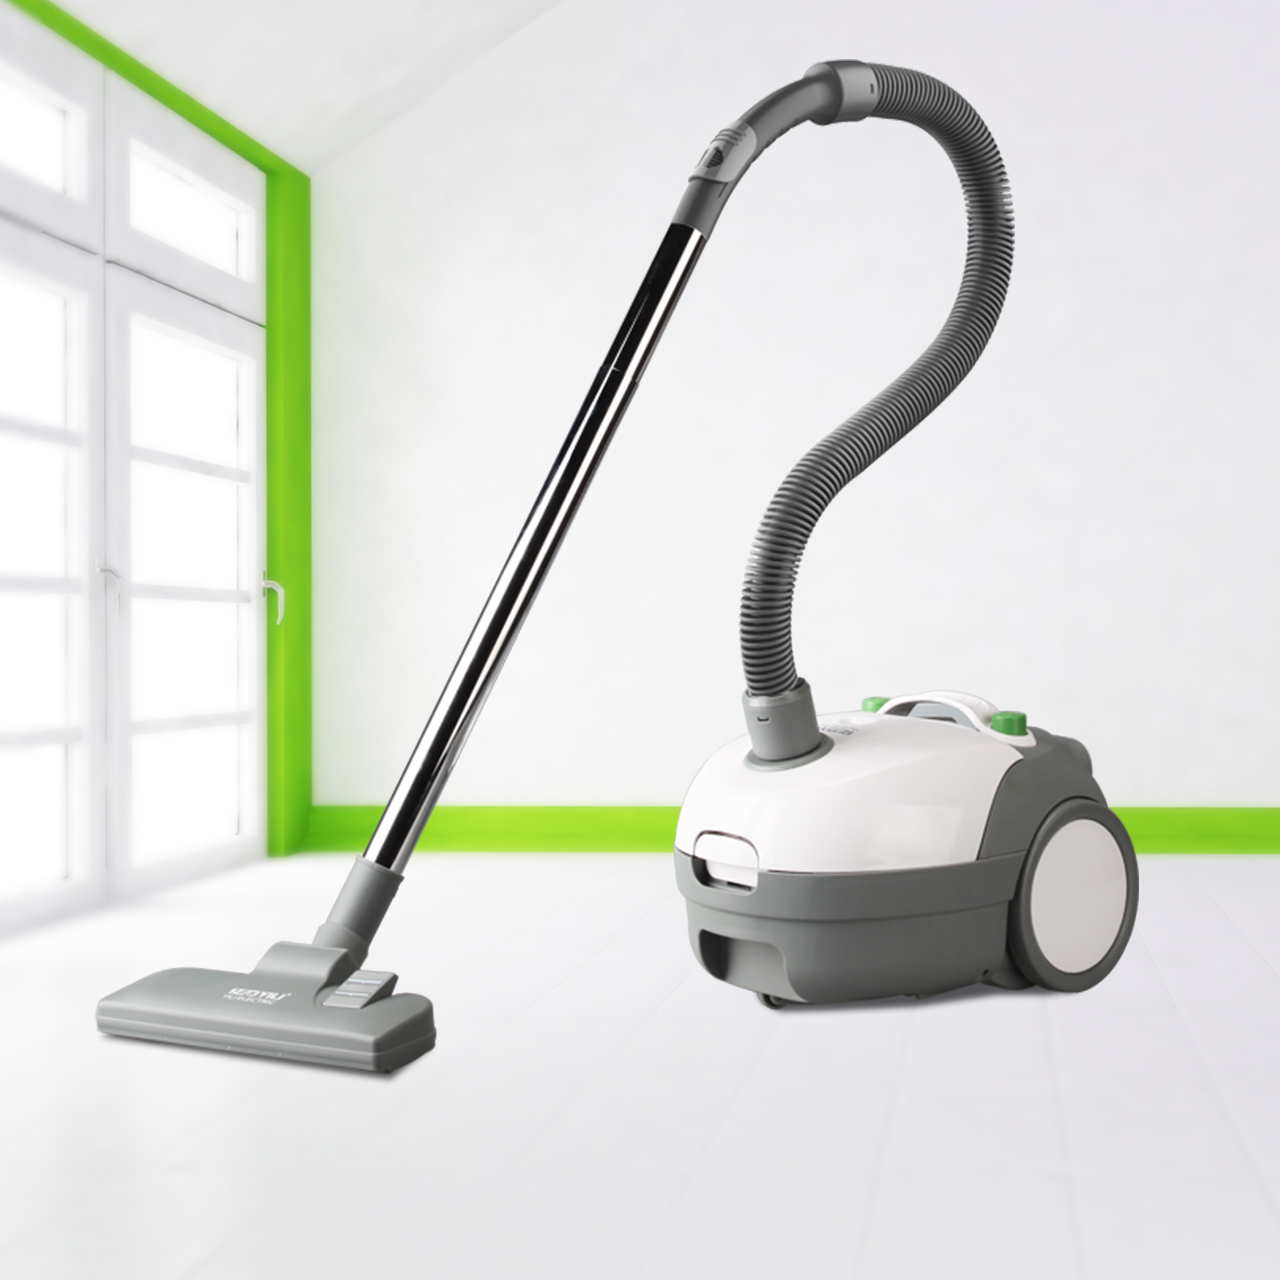 Quiet Vacuum Cleaner compare prices on handheld vacuum cleaner- online shopping/buy low